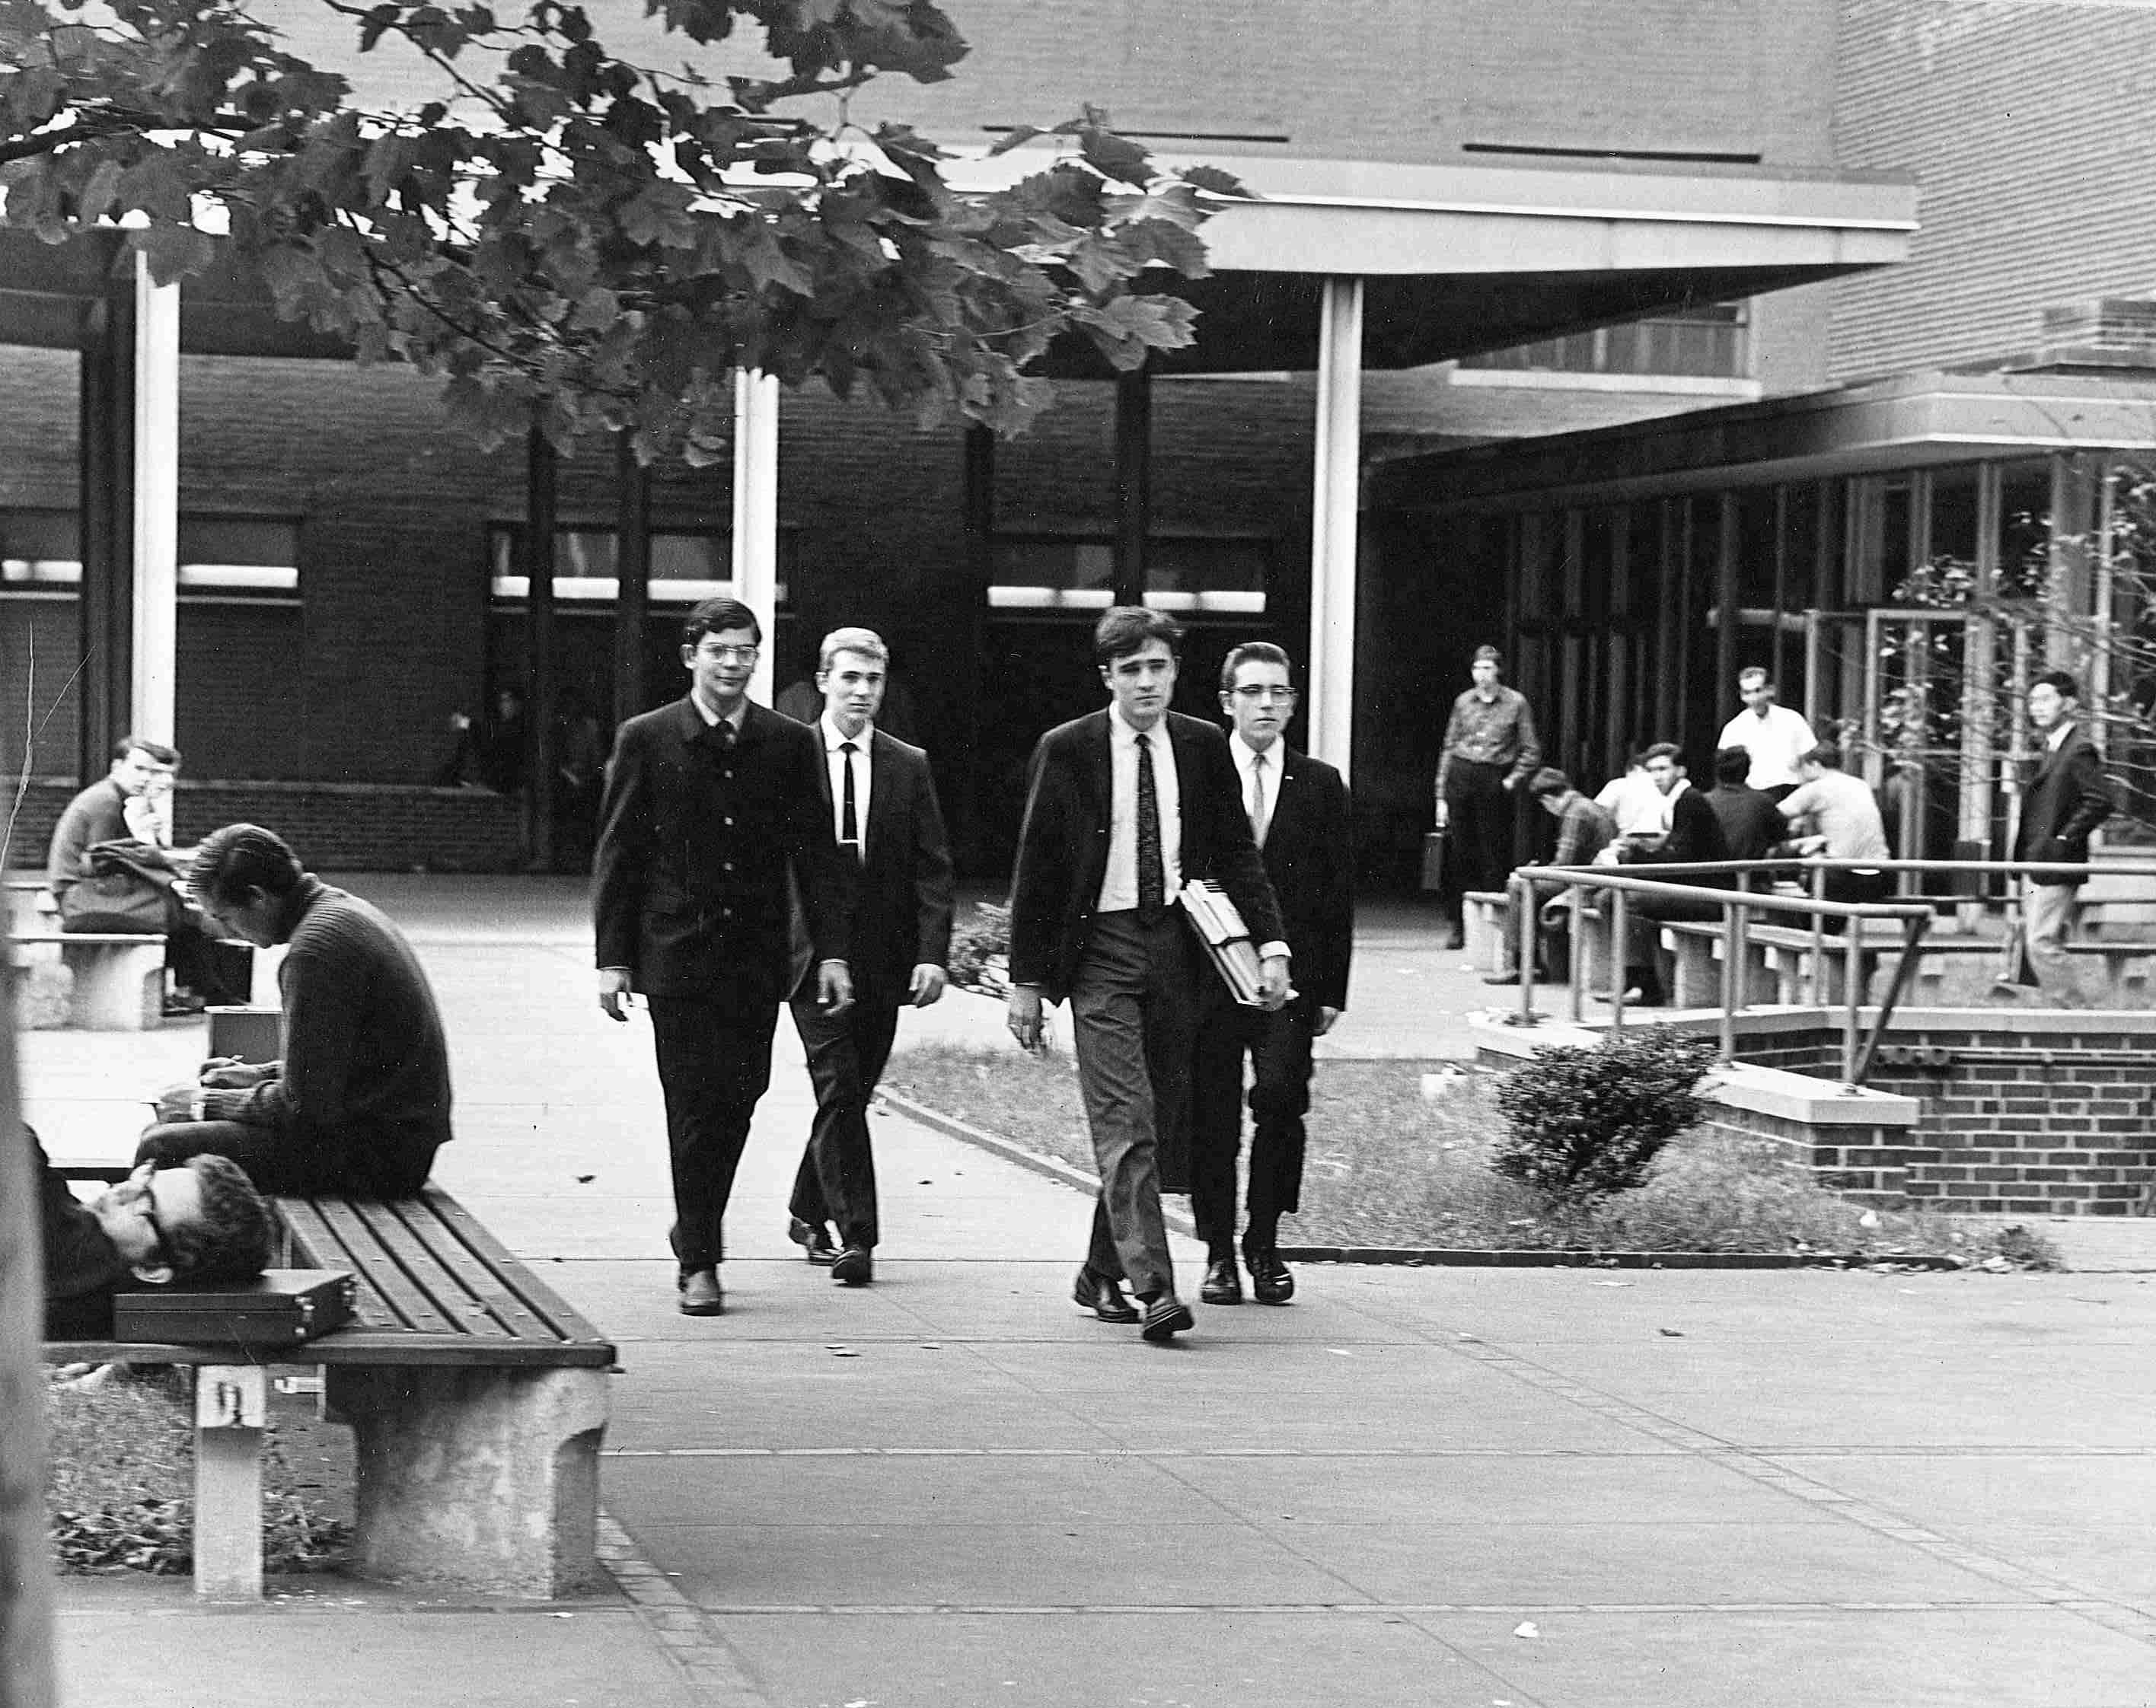 Students in front of 333 Jay Street, 1960s.